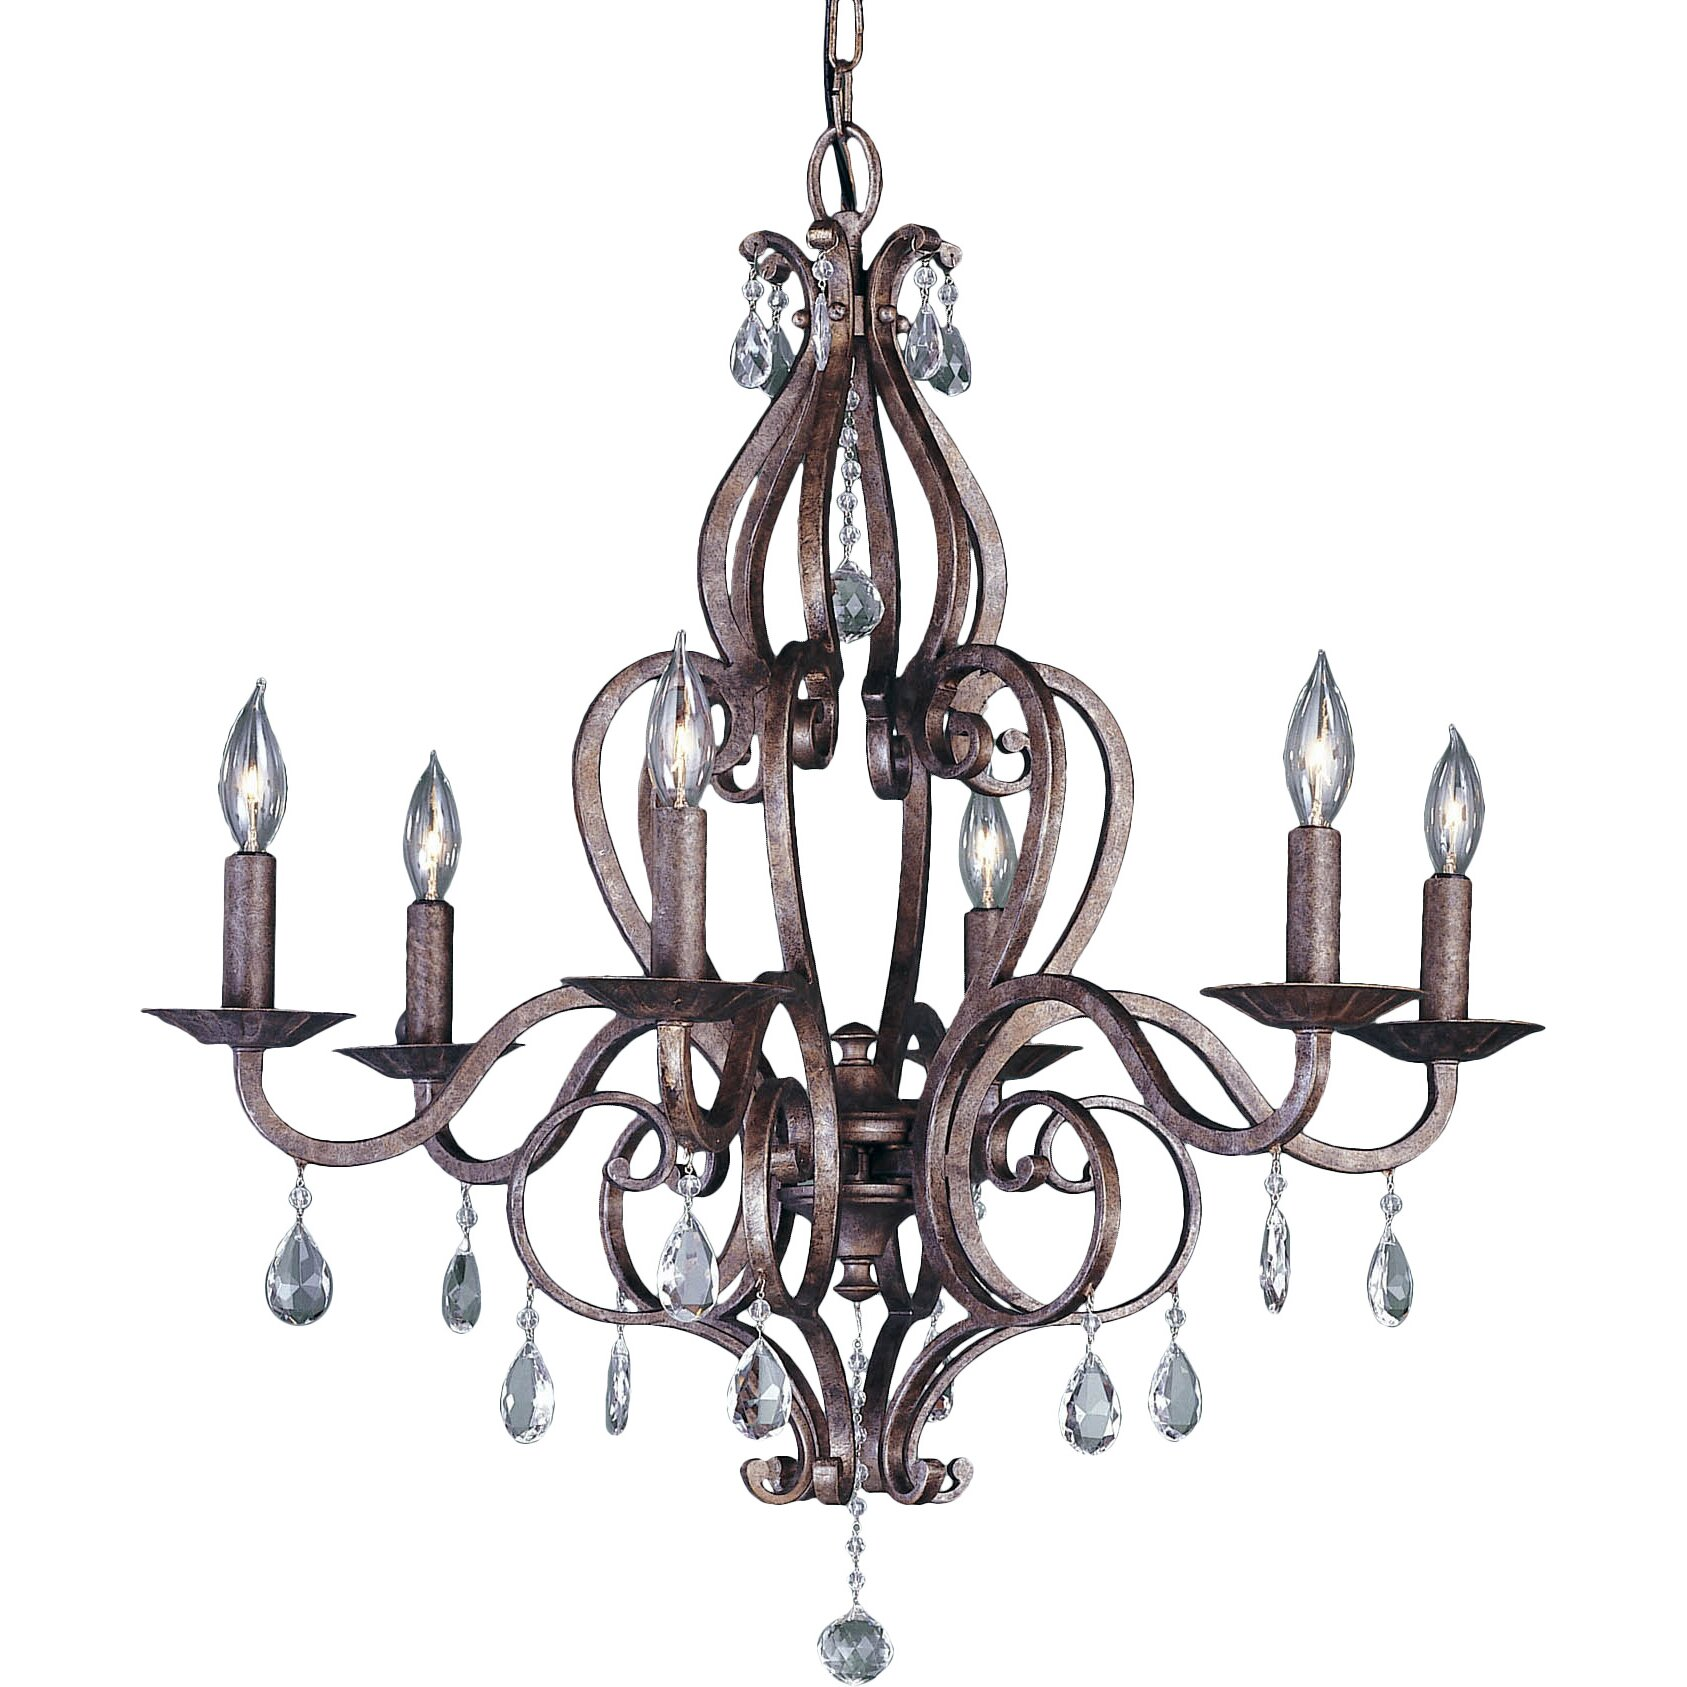 Murray Feiss Fusion Collection: Feiss Mademoiselle 6 Light Chandelier & Reviews